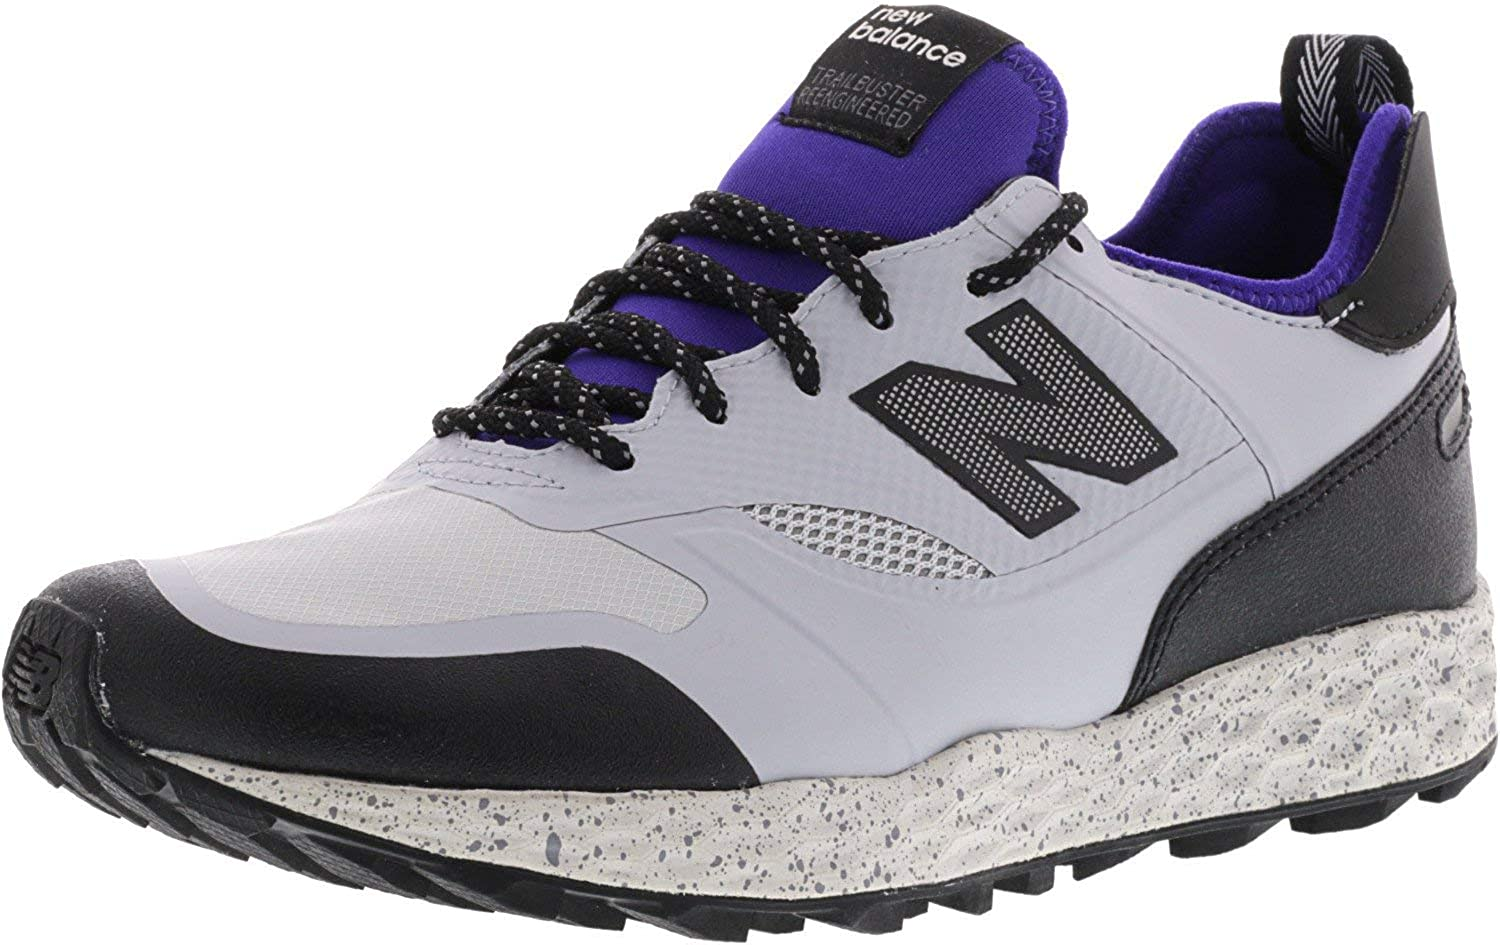 New Balance Trailbuster Men's Sneaker Black MFLTBBG